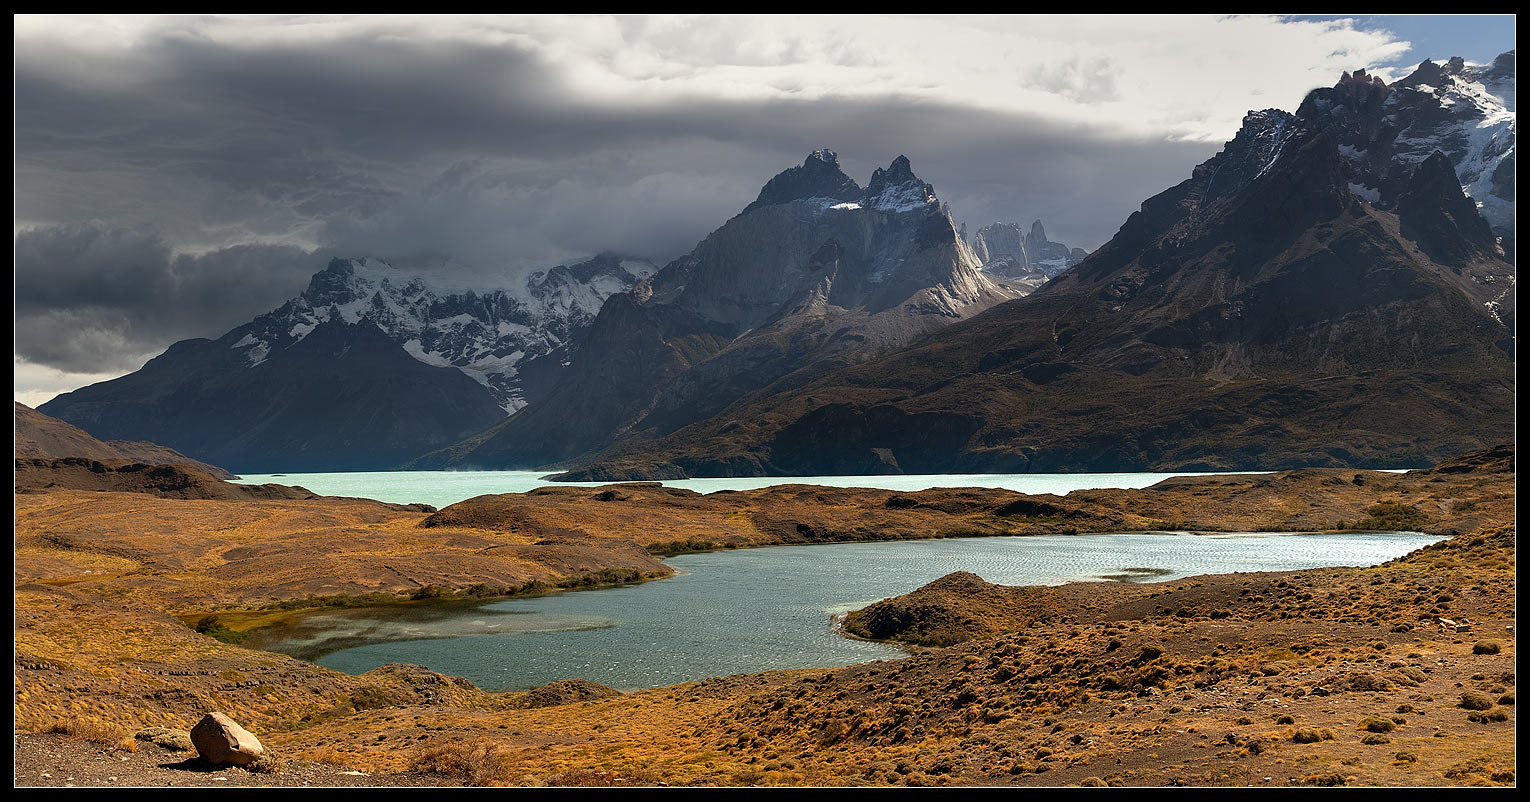 Photograph Chile by Victoria Rogotneva on 500px